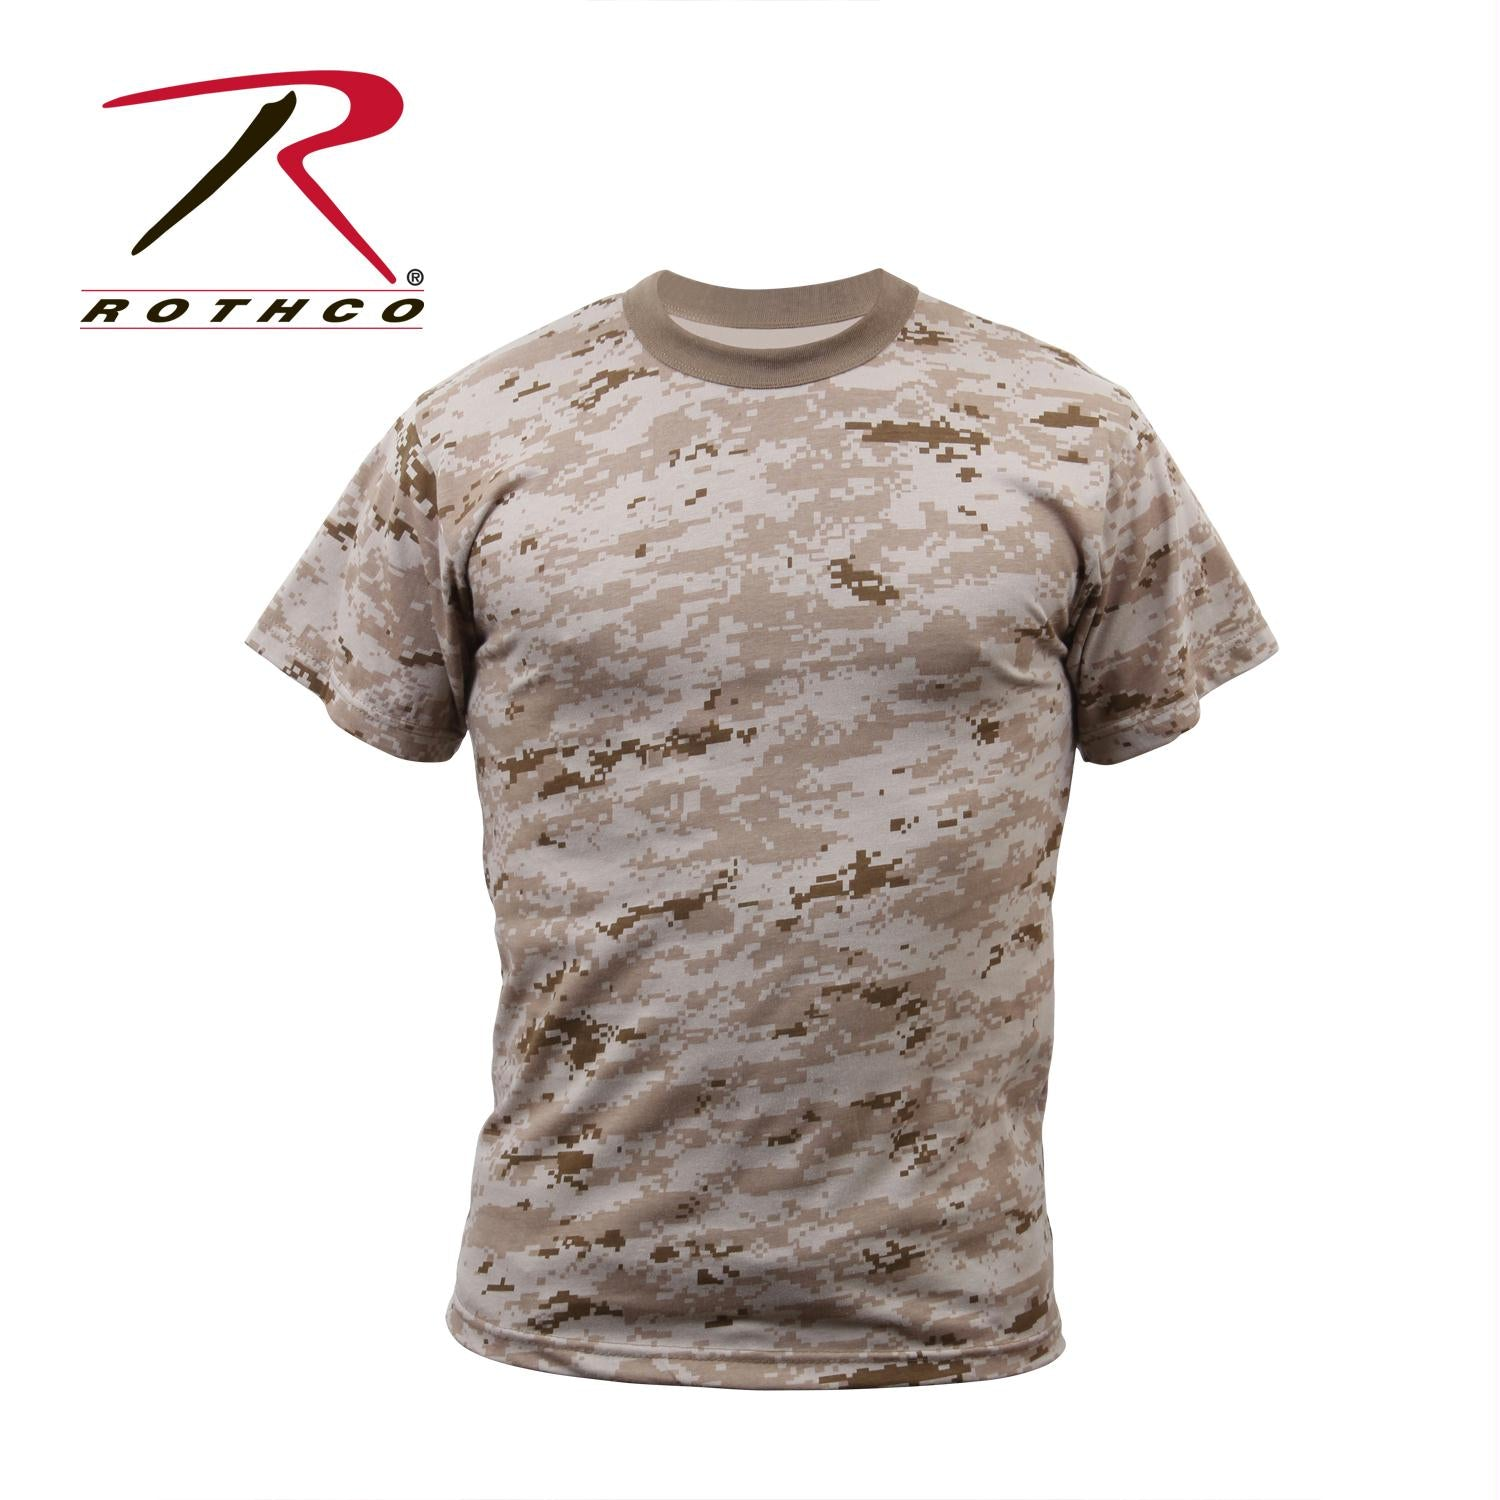 Rothco Digital Camo T-Shirt - Desert Digital Camo / M